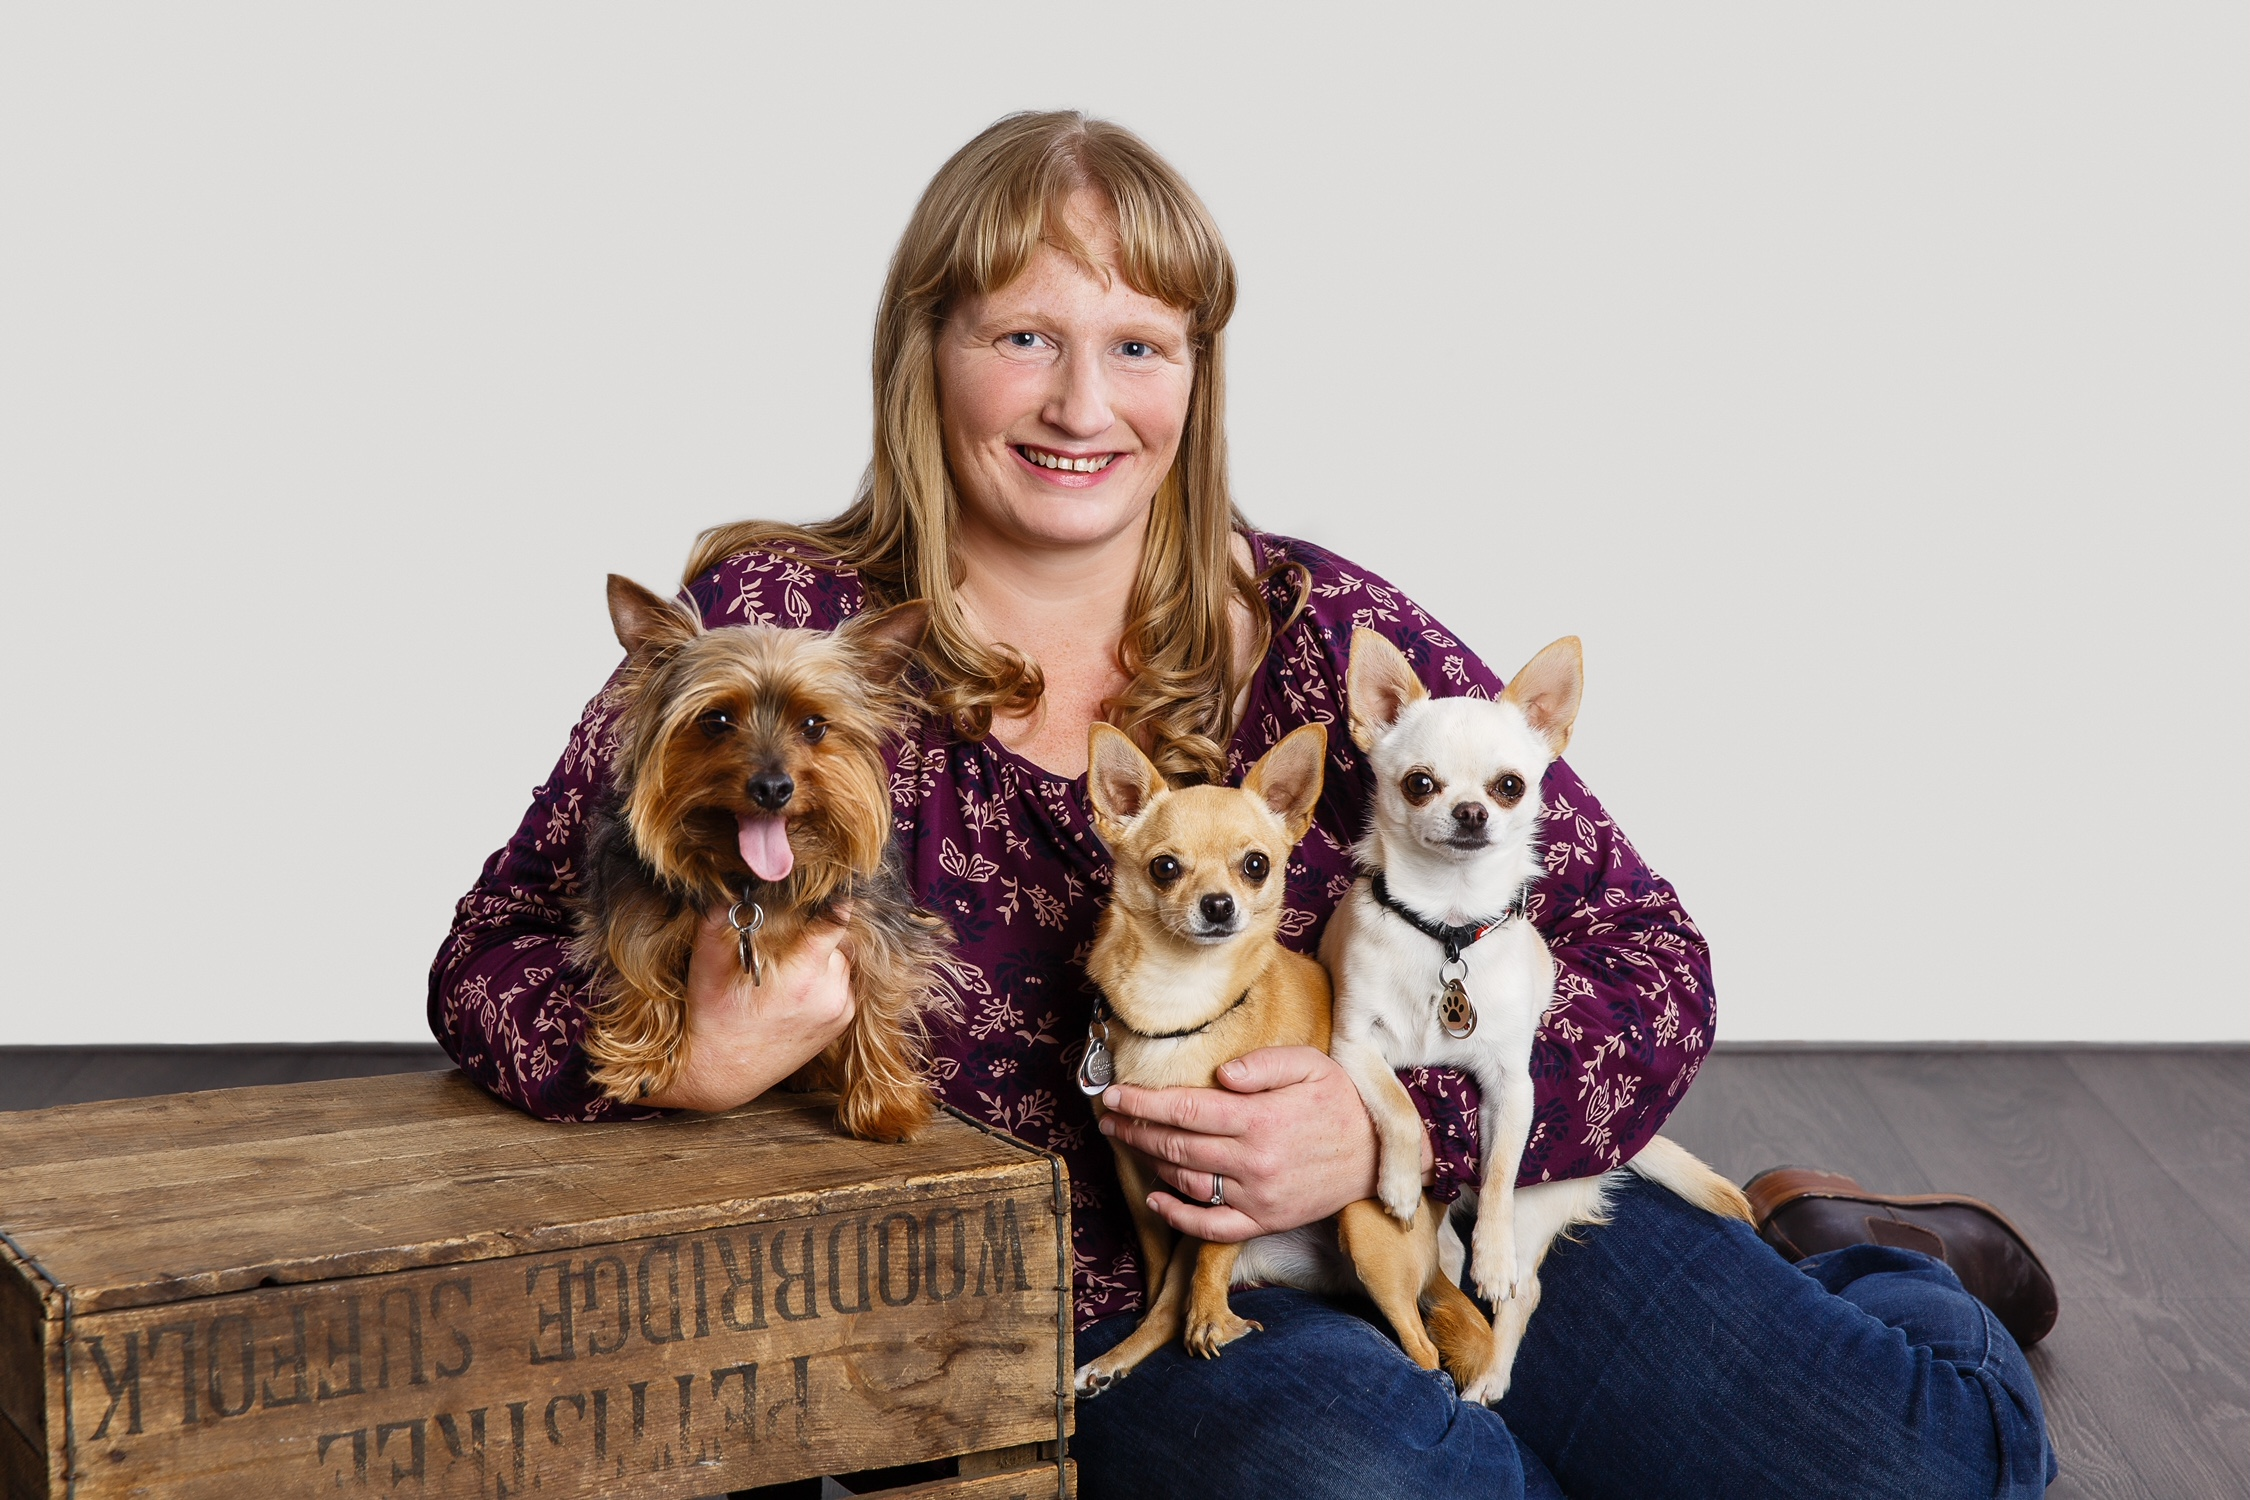 Lorraine with dogs